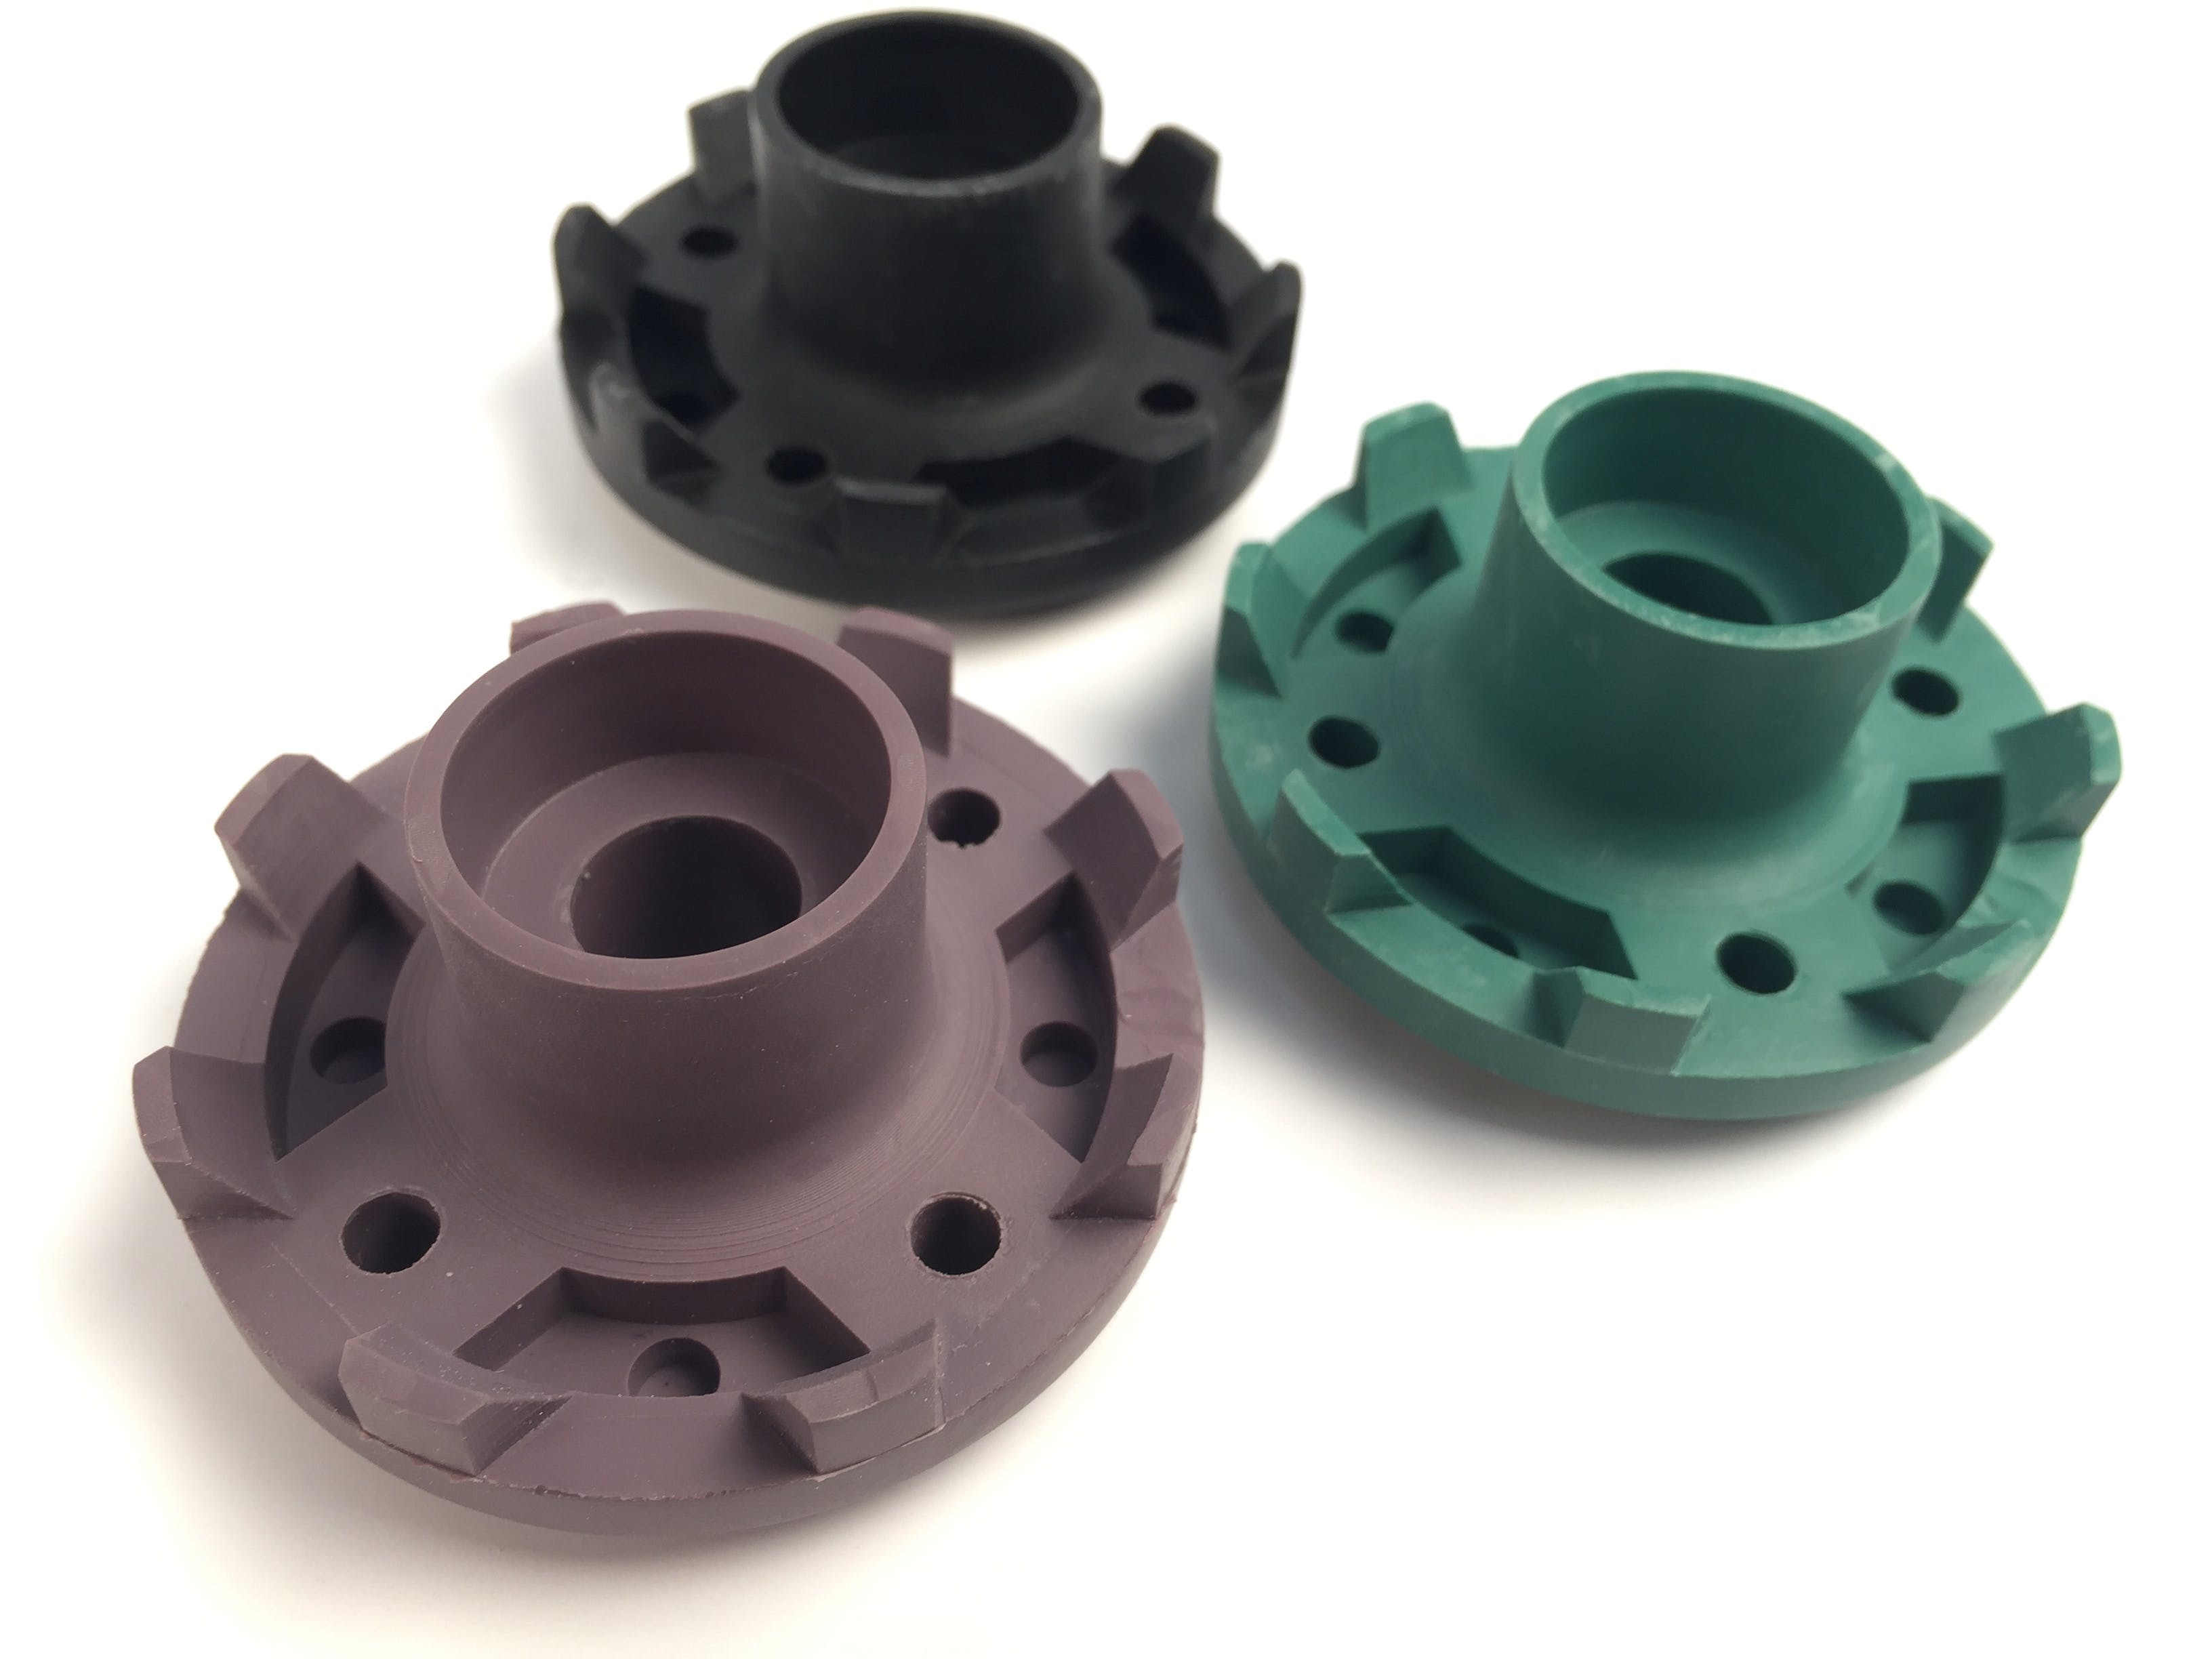 Urethane cast parts in different colors and durometers from very rigid to very soft